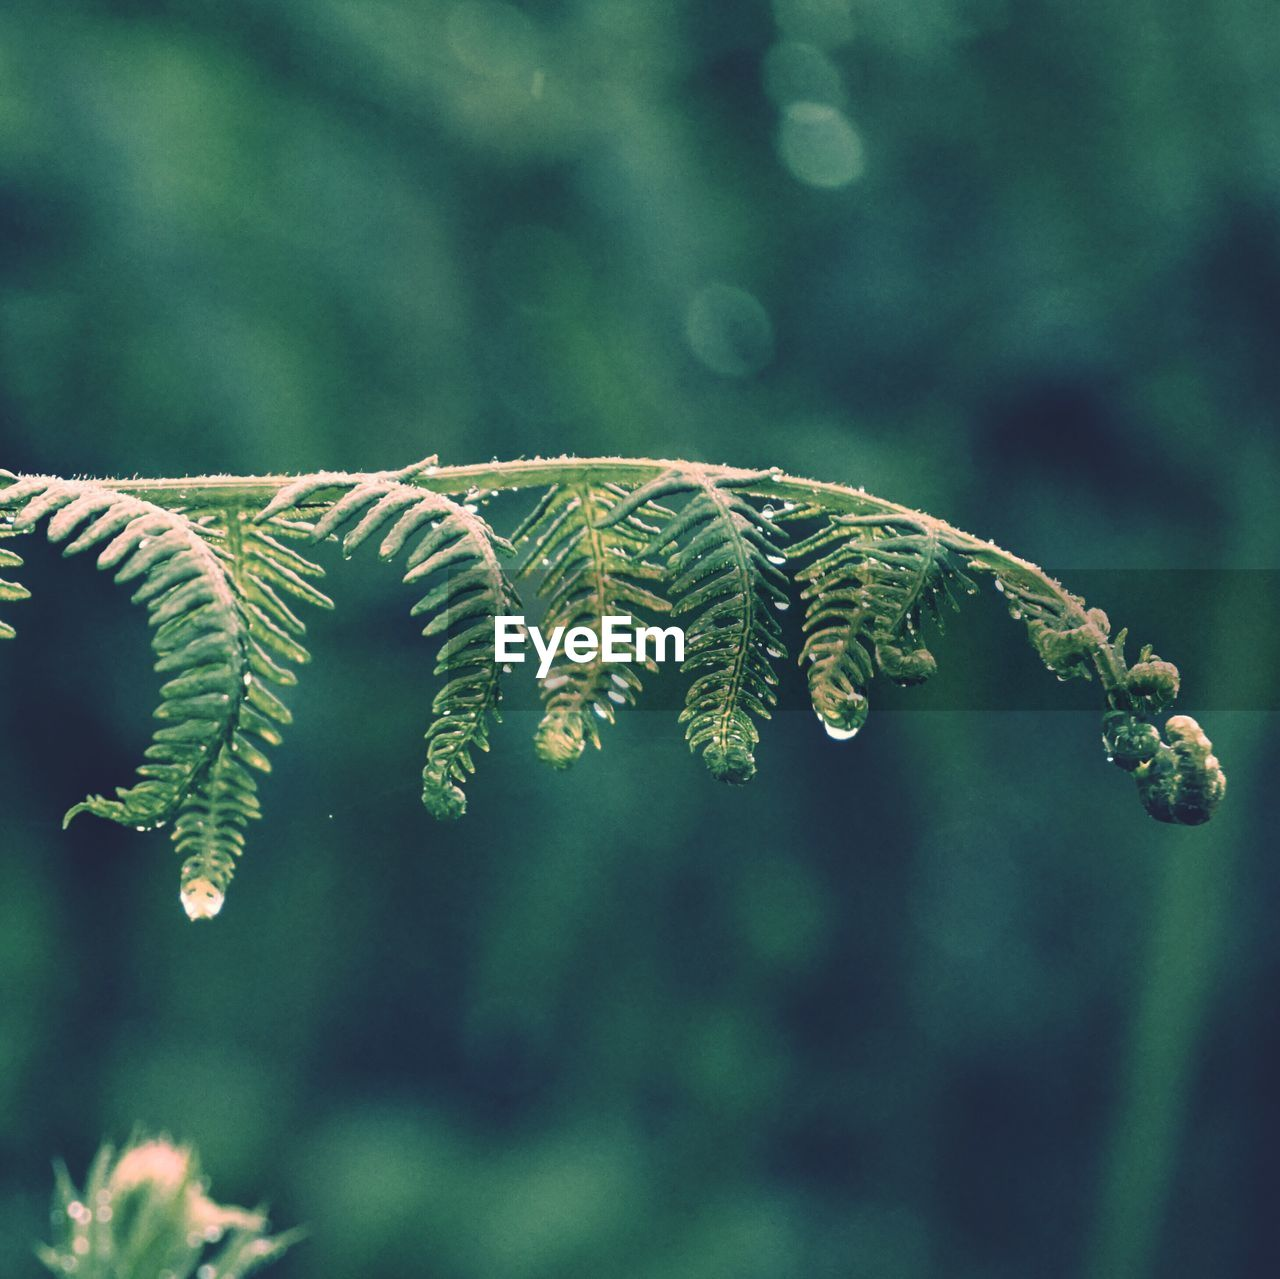 plant, growth, green color, focus on foreground, leaf, plant part, beauty in nature, close-up, no people, day, nature, tree, selective focus, fragility, fern, vulnerability, tranquility, outdoors, branch, freshness, coniferous tree, leaves, pine tree, fir tree